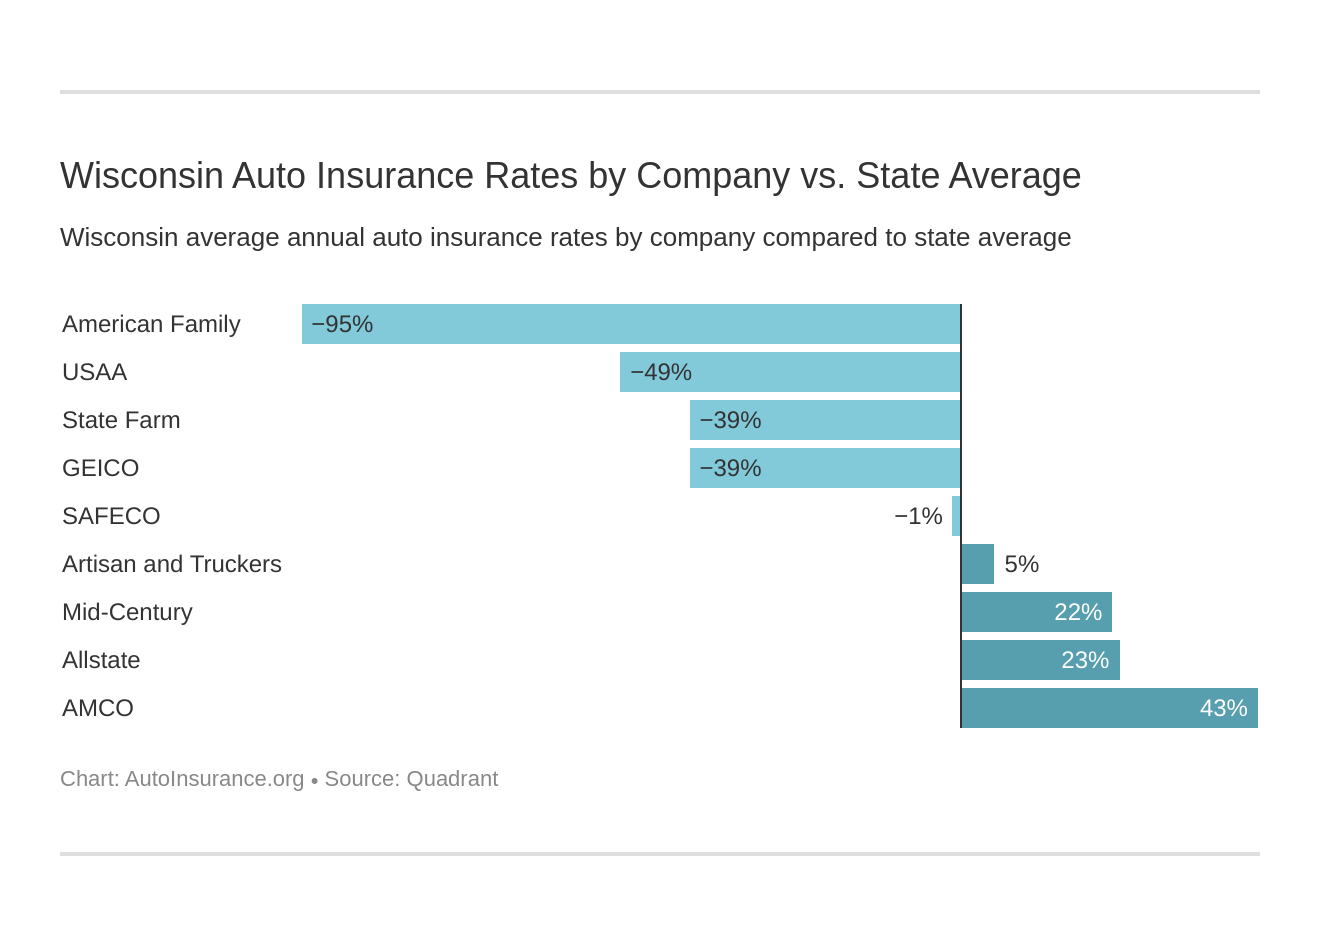 Wisconsin Auto Insurance Rates by Company vs. State Average